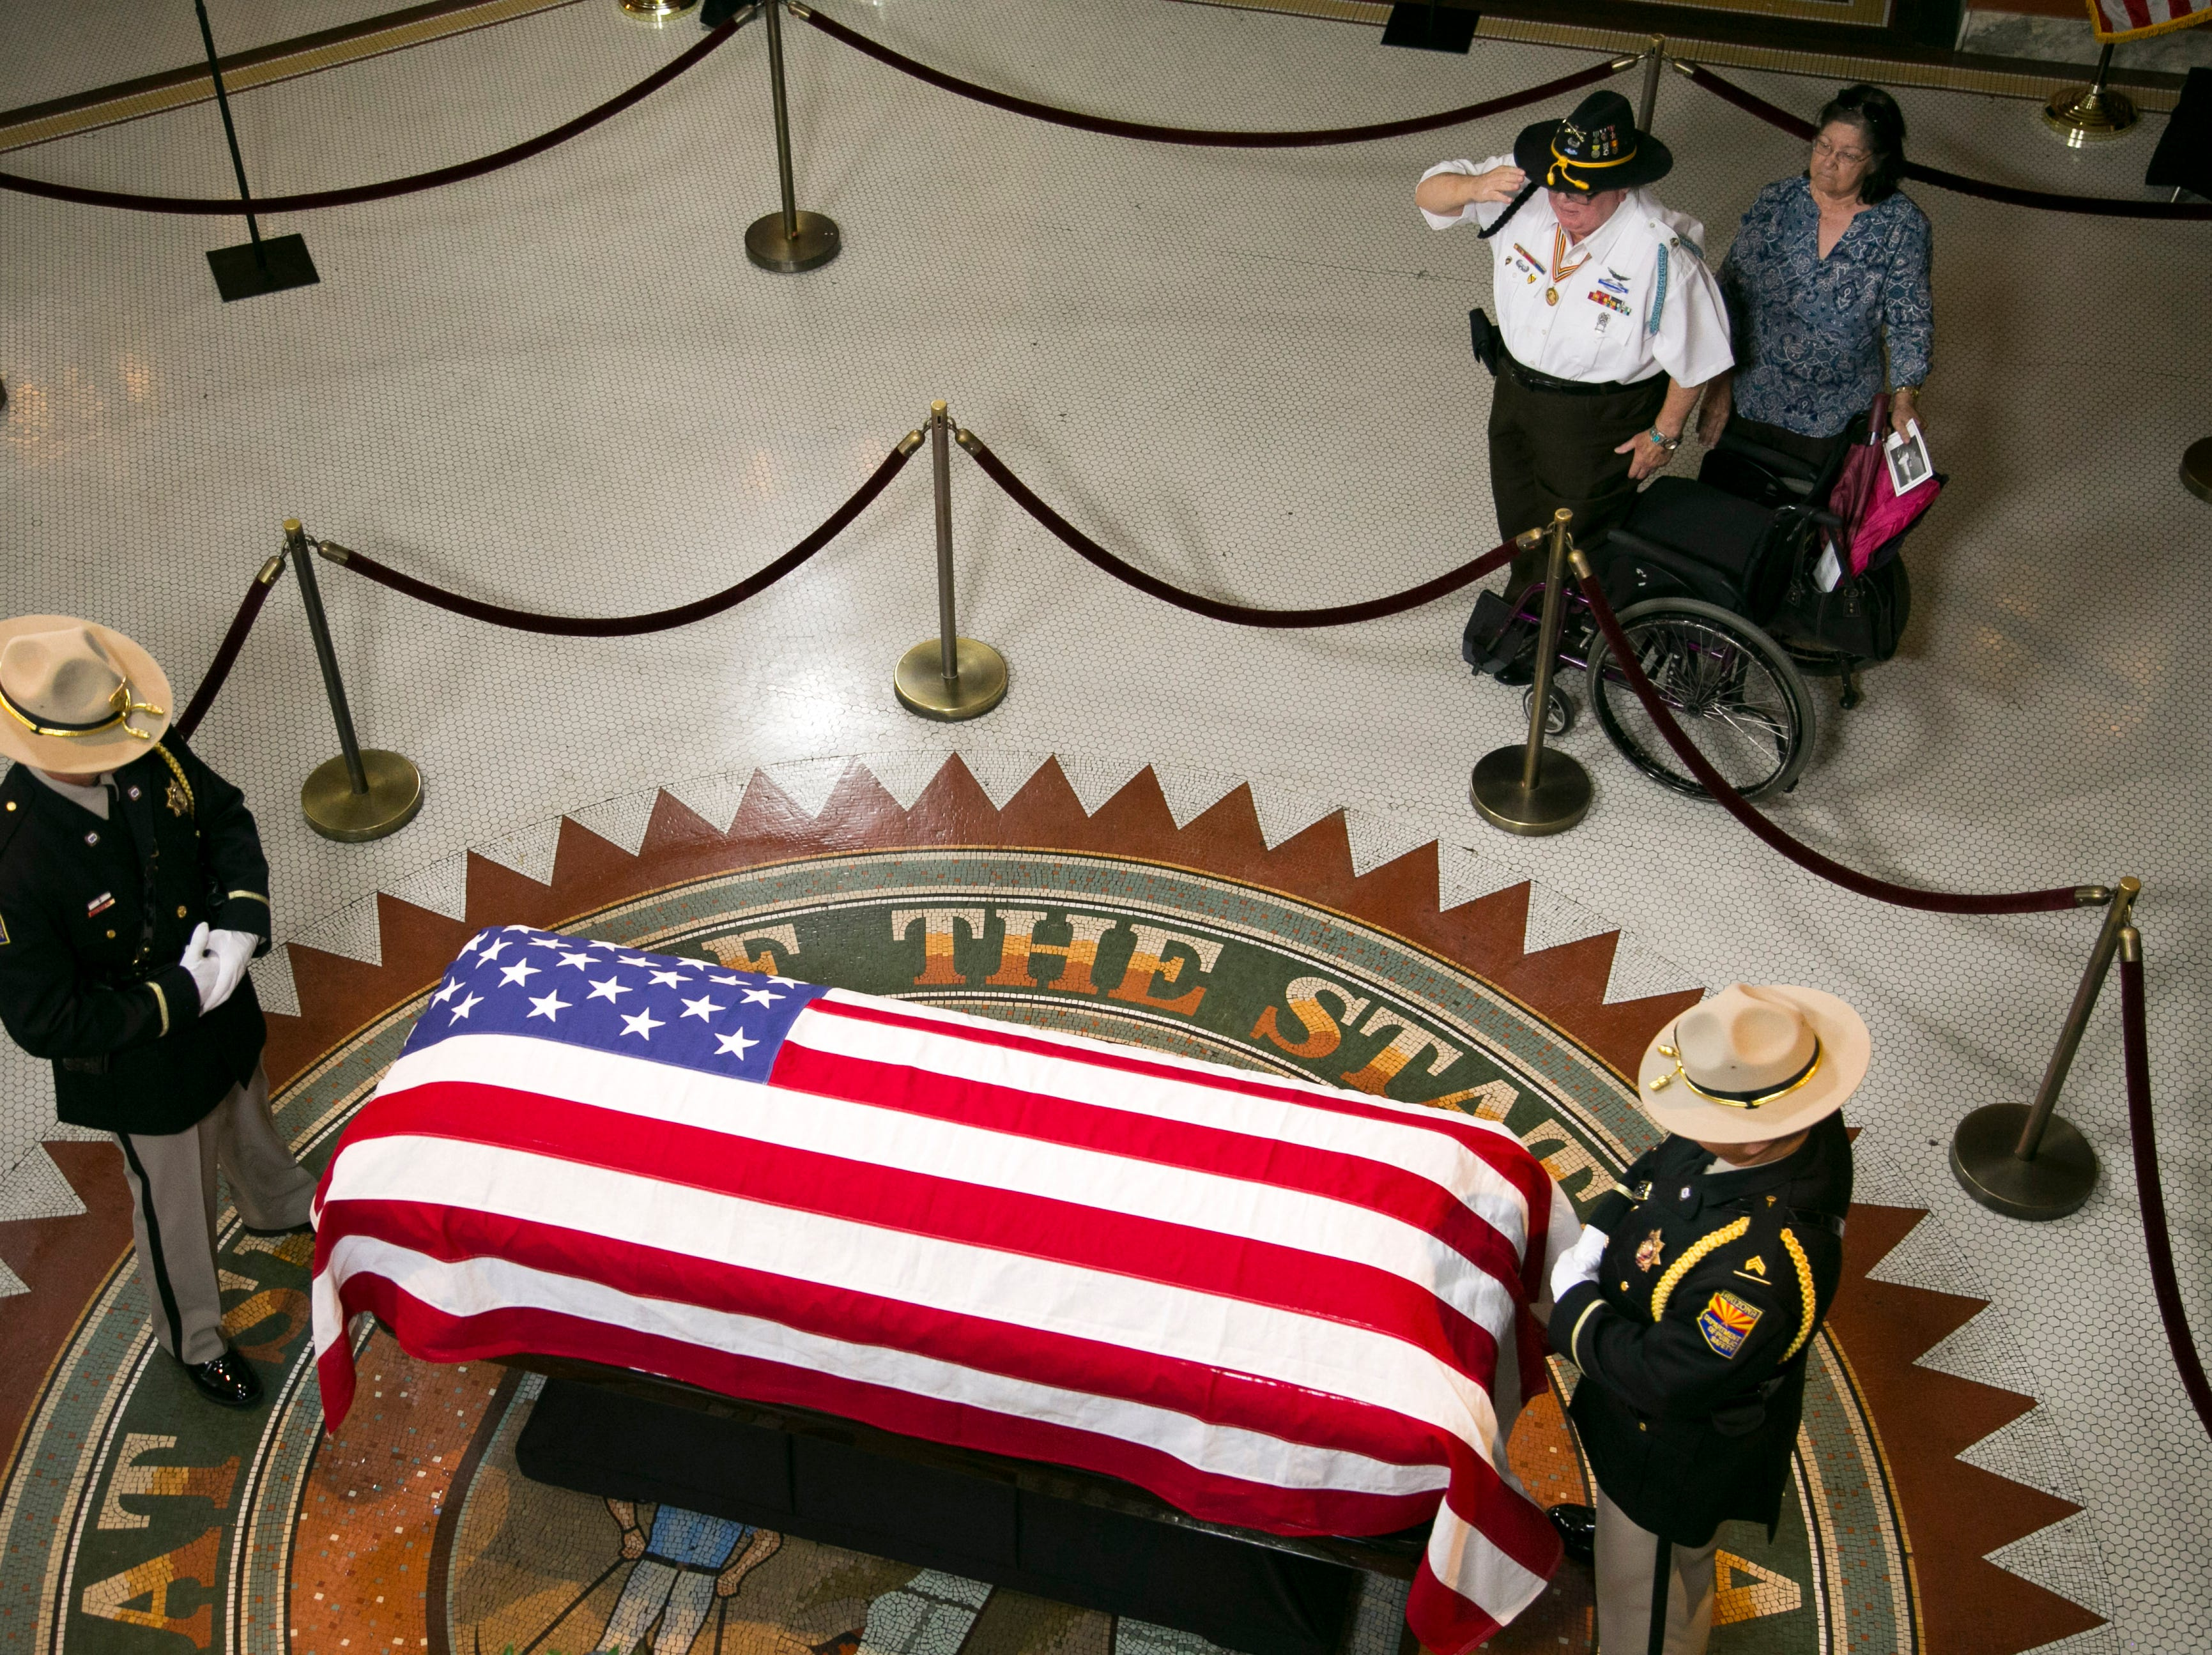 Antonio Chavez of Phoenix, a U.S. Army veteran of the Vietnam War, salutes Sen. John McCain lying in state, as his wife, Maria Chavez, looks on in the state Capitol in Phoenix on Aug. 29, 2018.